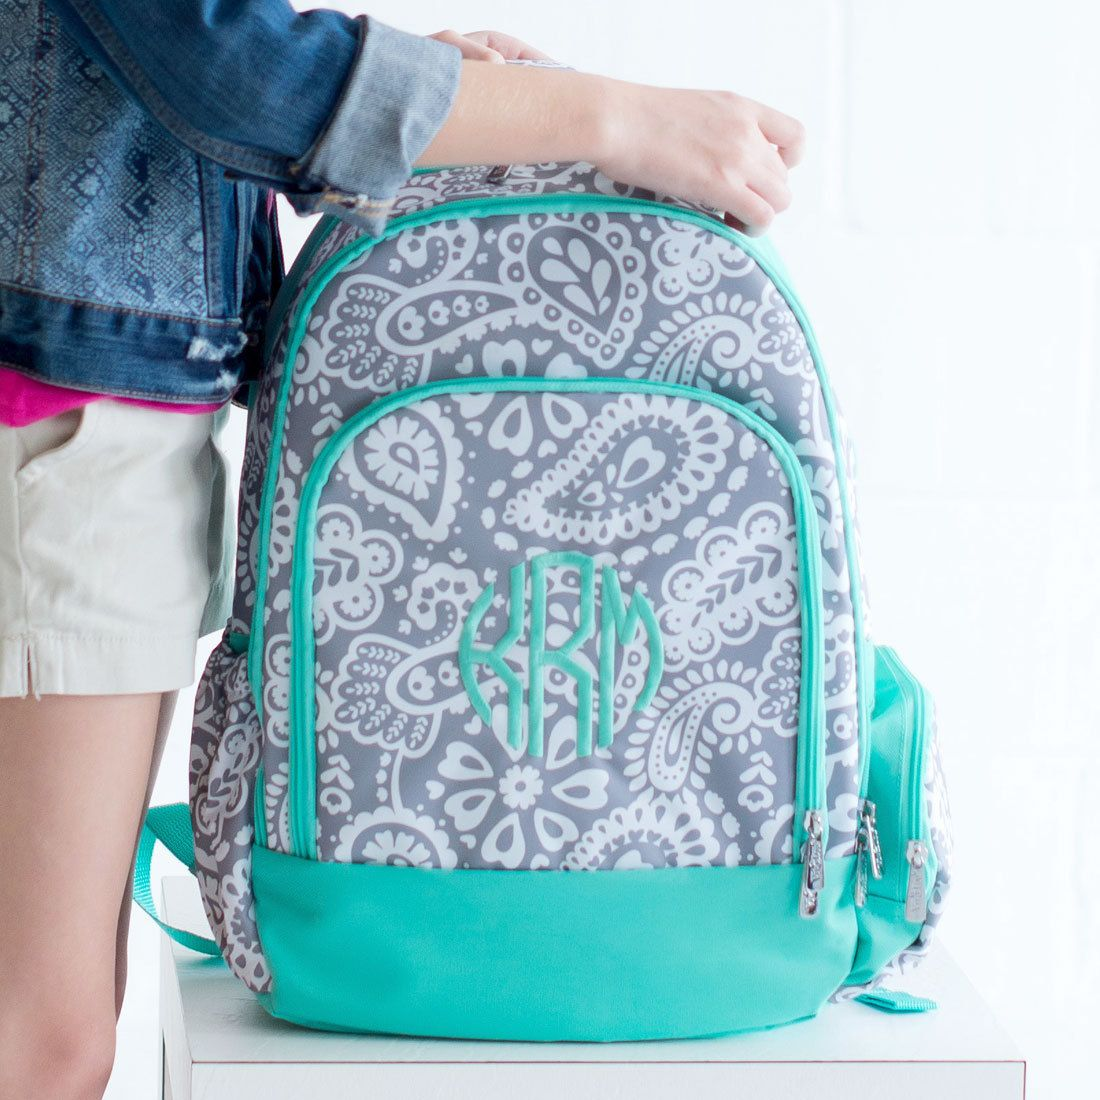 ecce797afabc Monogram Girl s Backpack - Paisley Knapsack - Personalized Backpack -  Girl s Backpack - Initials School Bag - Monogrammed Backpack - Gift by ...